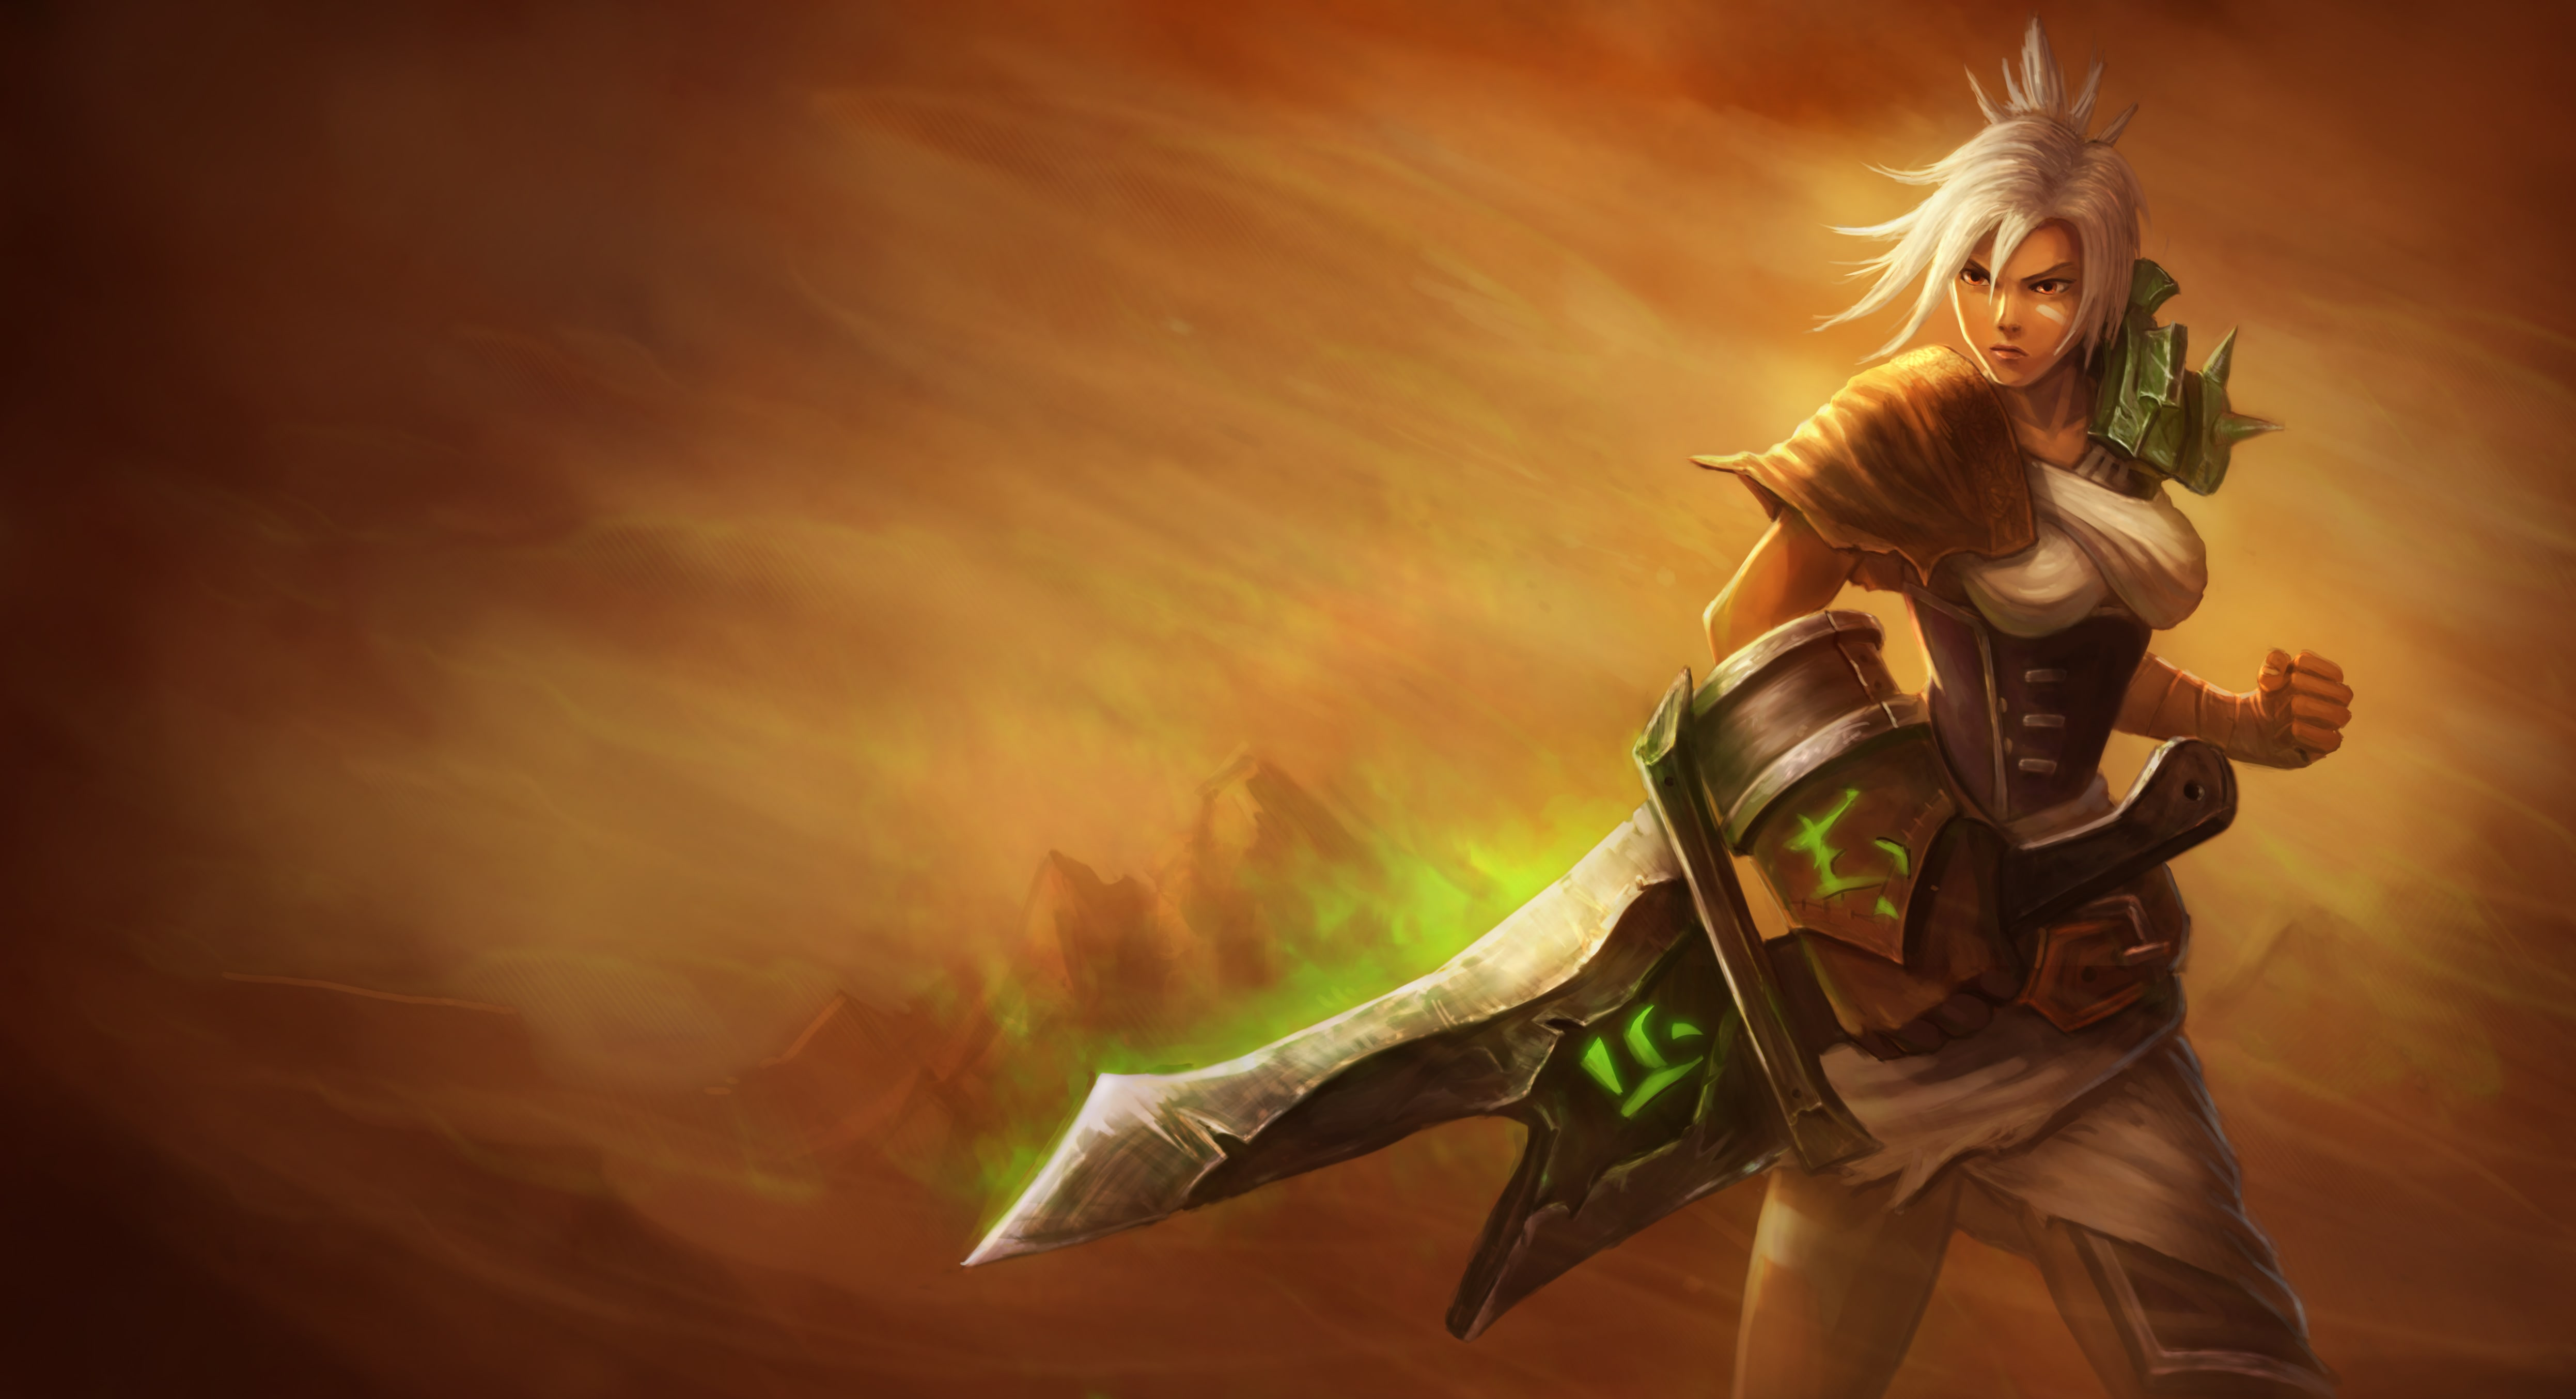 Riven's Launch Splash Art